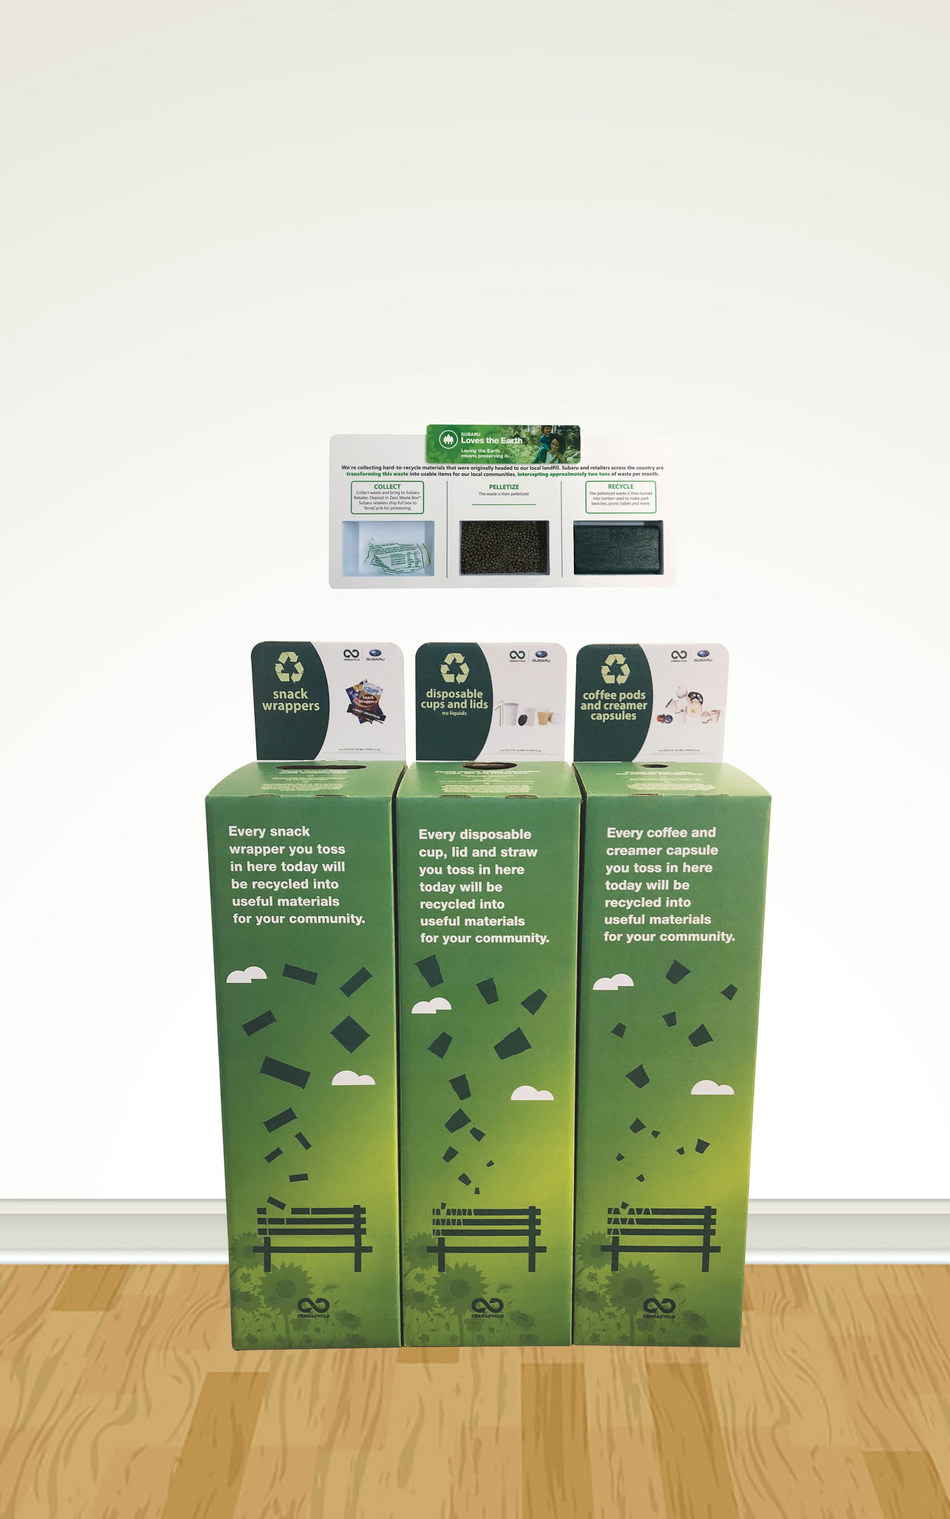 For Subaru Loves the Earth, Subaru and TerraCycle® are continuing to intercept and repurpose hard to recycle items at more than 580 participating Subaru retailers nationwide.